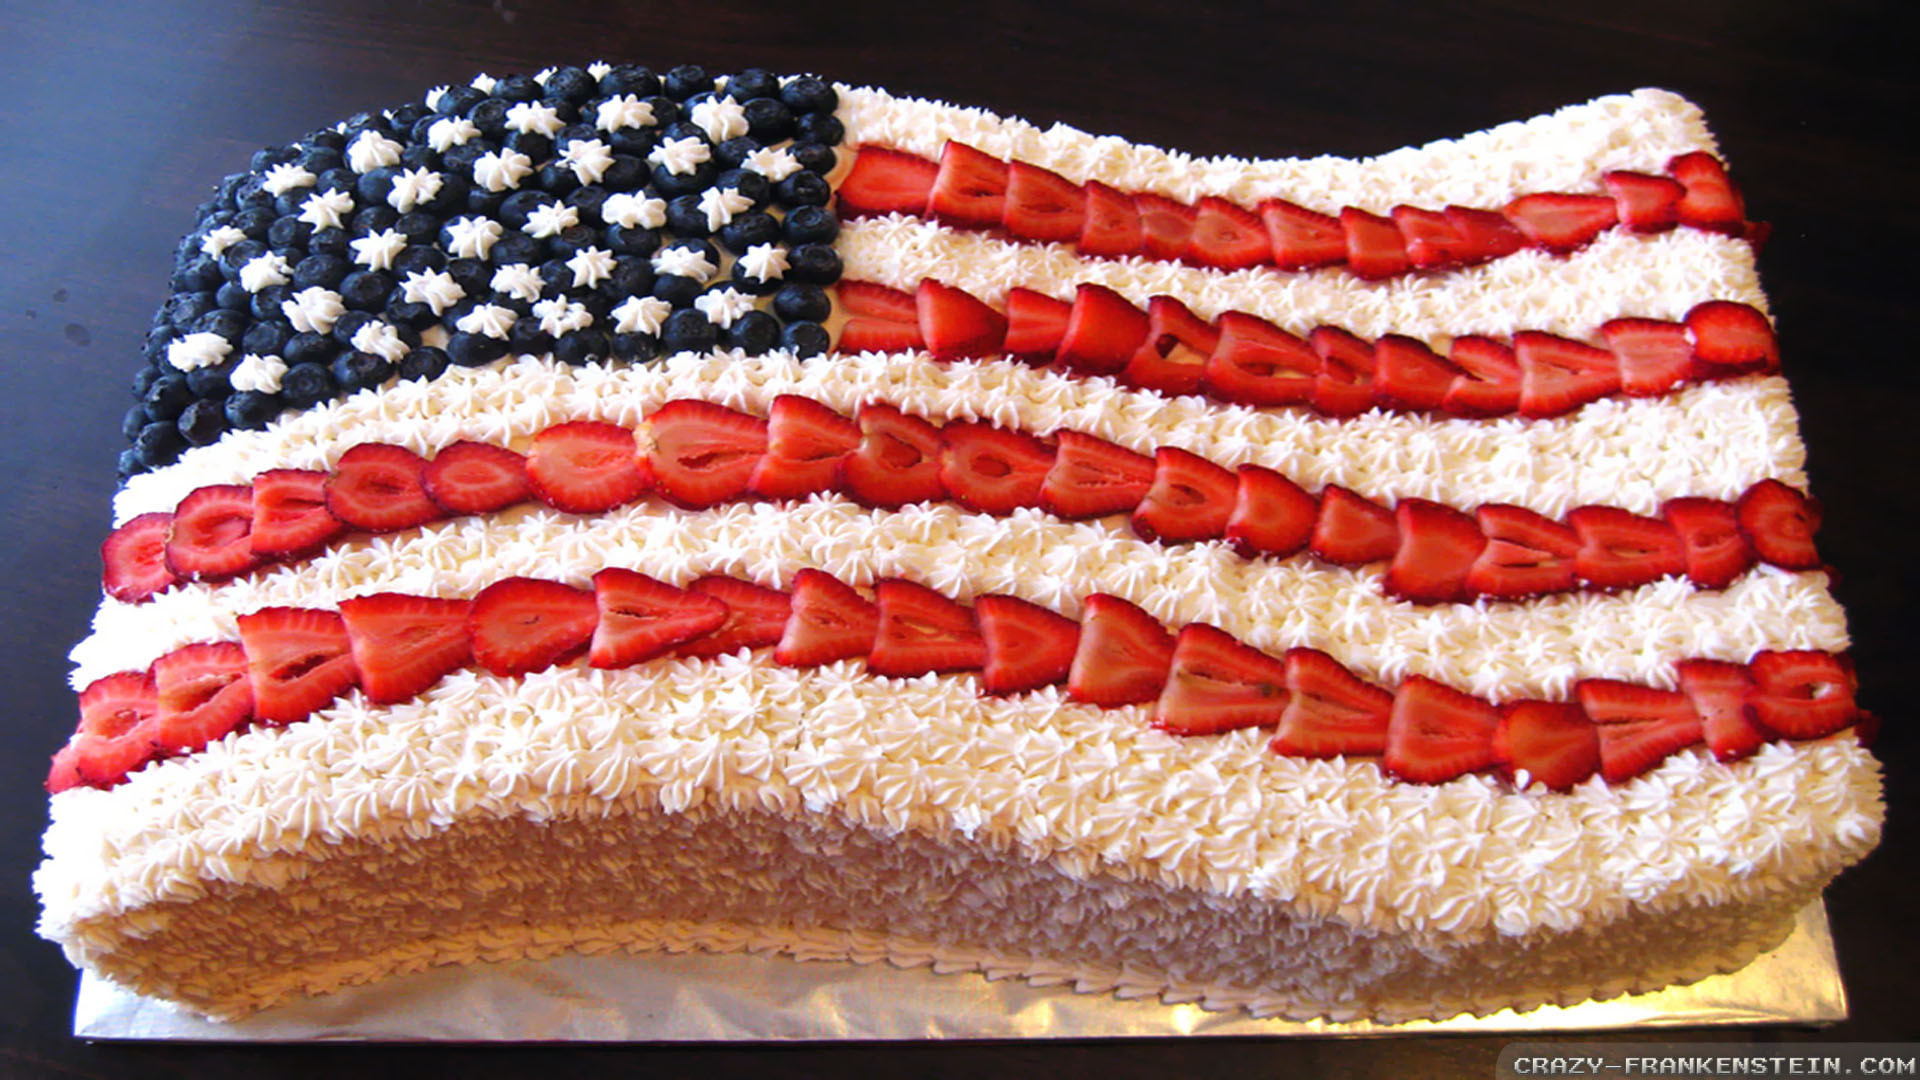 Wallpaper: Awesome July 4th cake wallpapers. Resolution: 1024×768 |  1280×1024 | 1600×1200. Widescreen Res: 1440×900 | 1680×1050 | 1920×1200